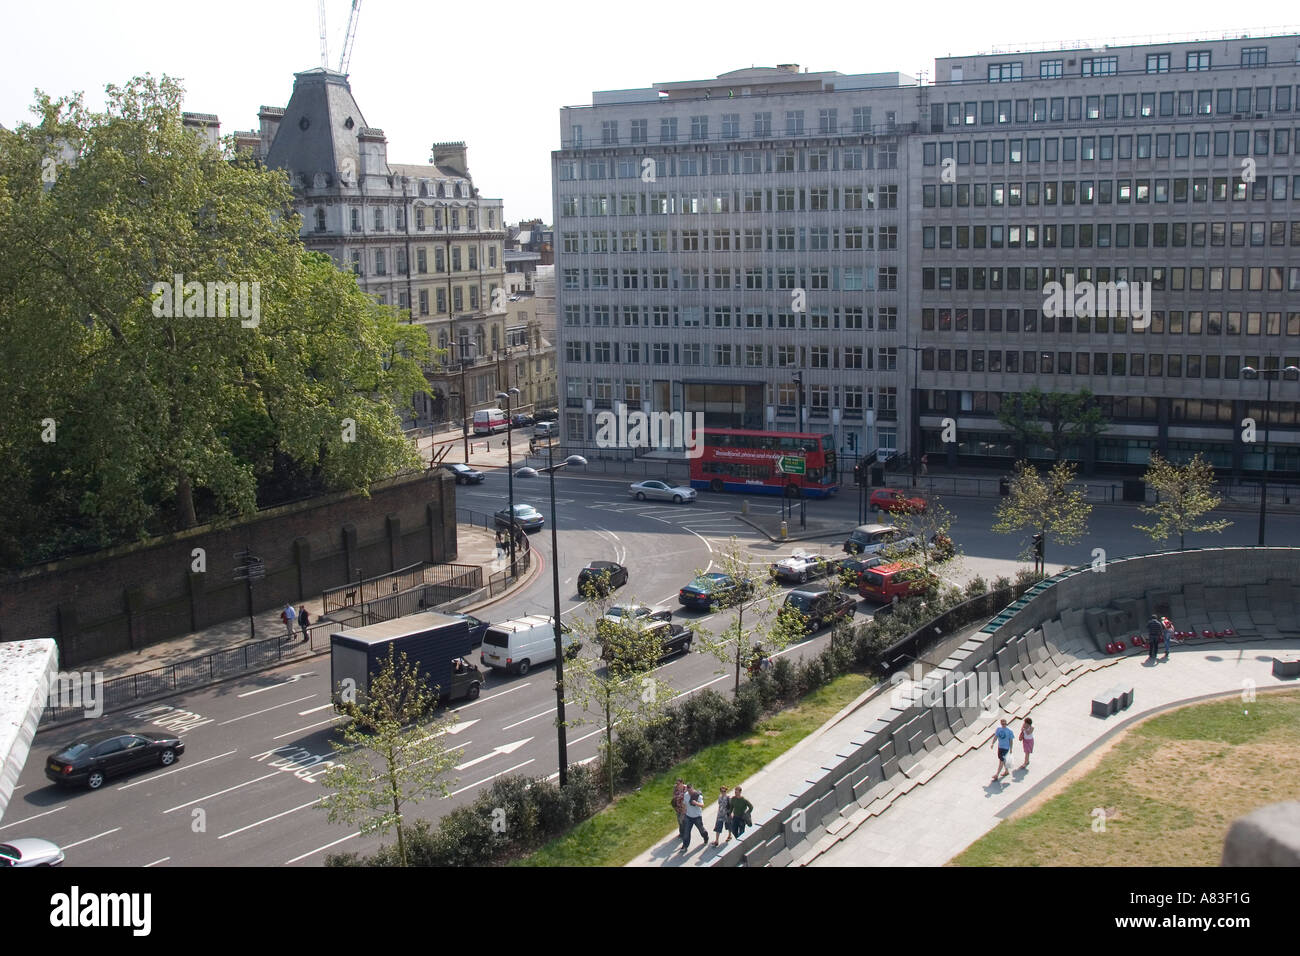 View from the top of the Wellington Arch, Hyde Park Corner London GB UK - Stock Image